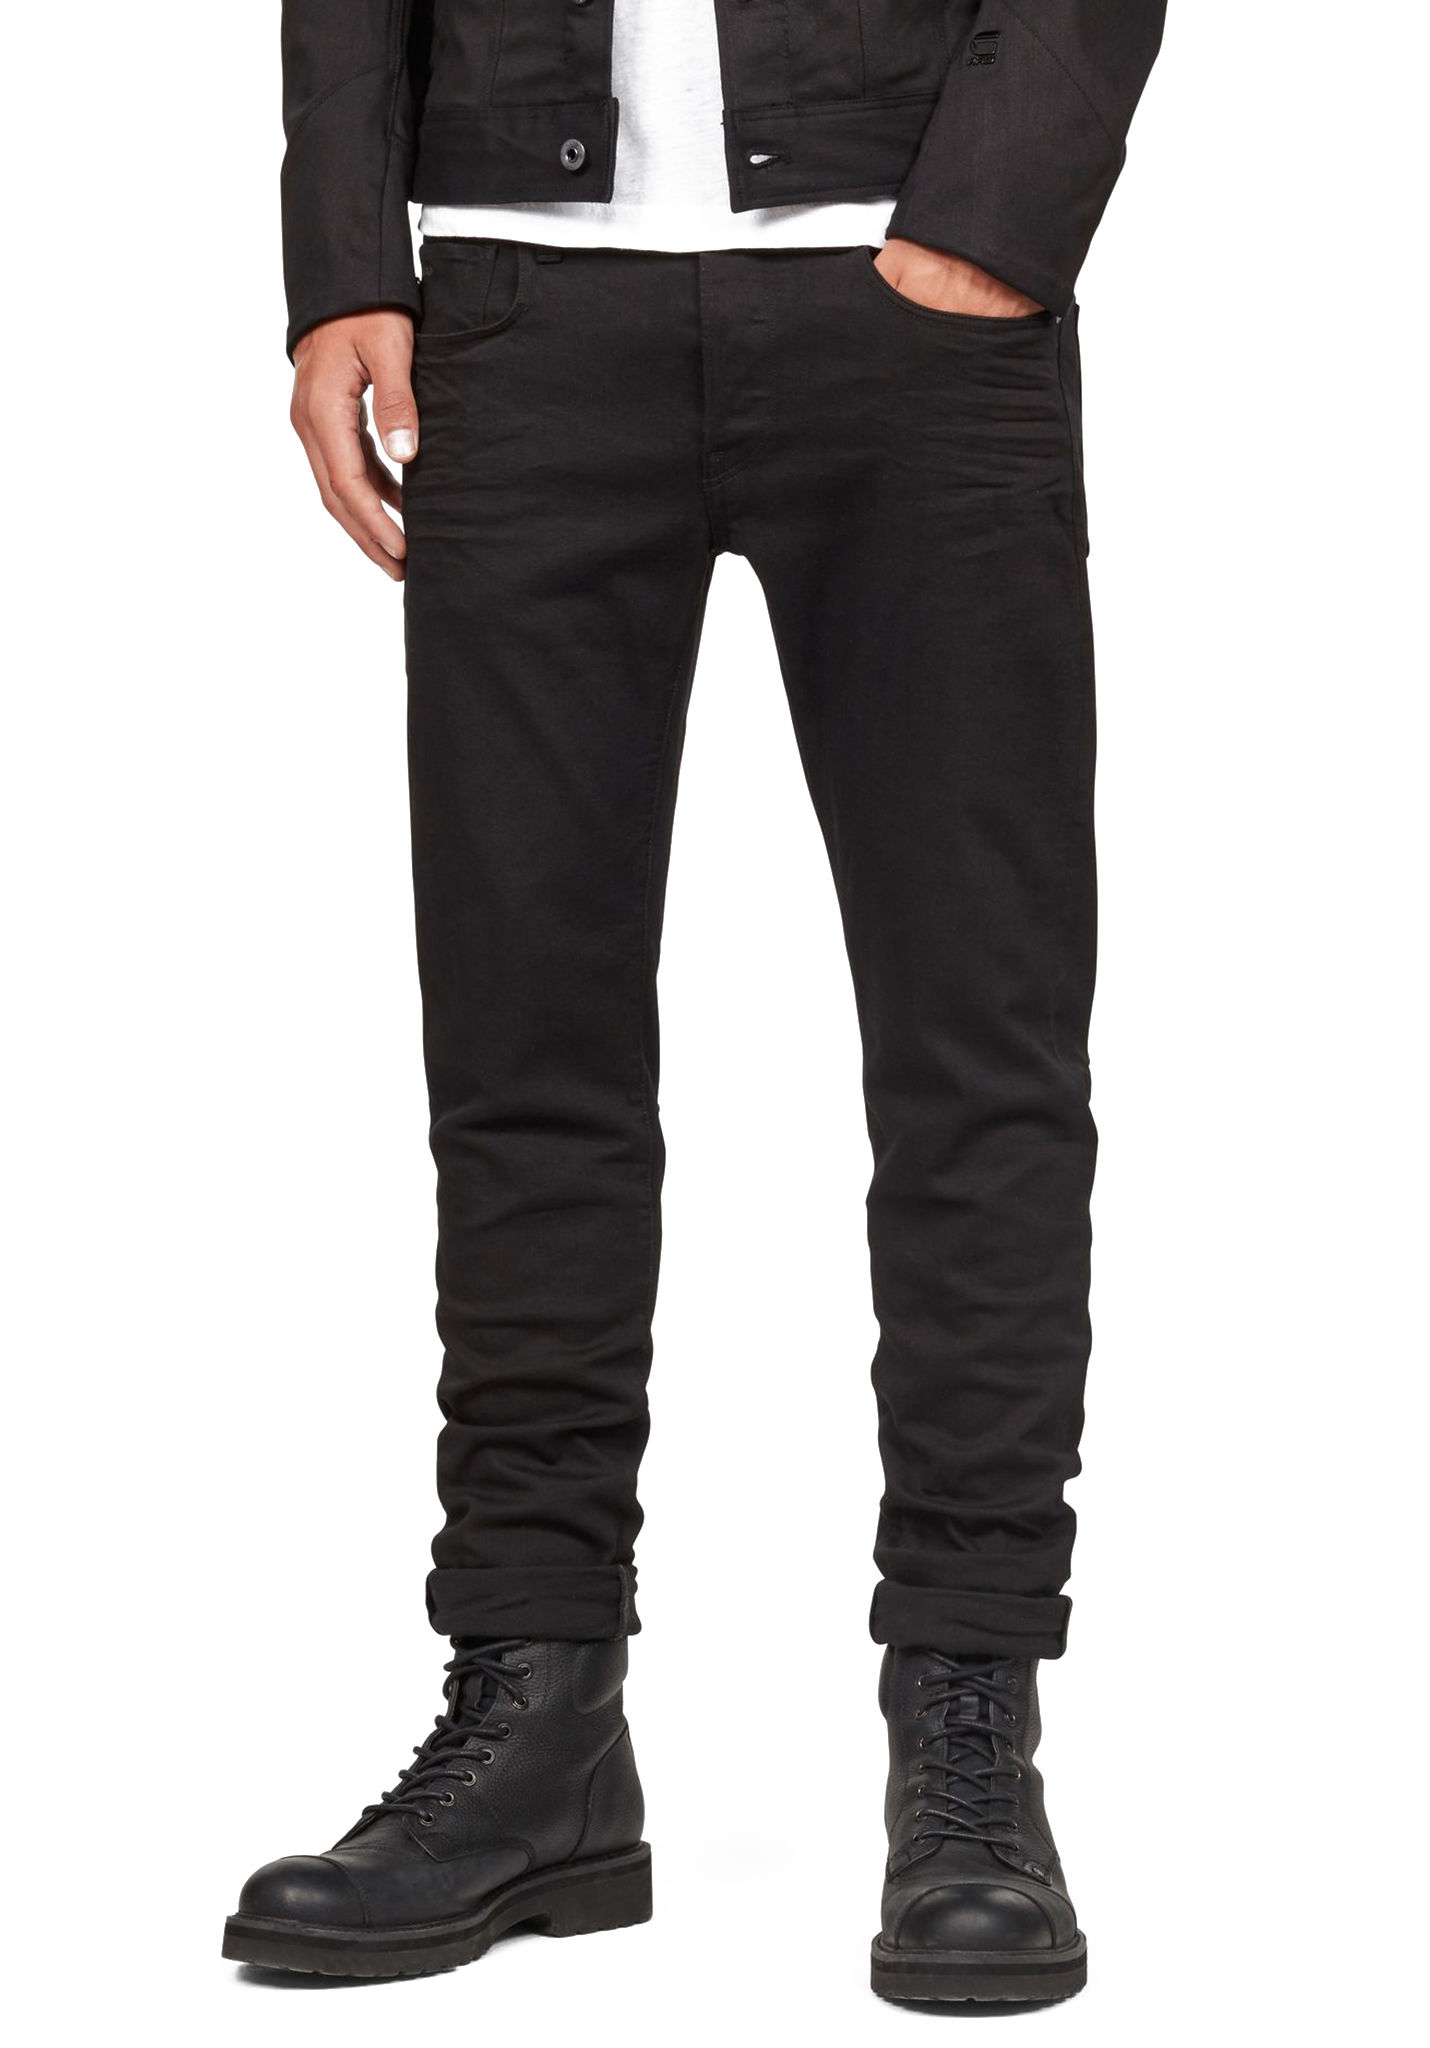 99c42cc4b09076 G-STAR 3301 Slim - Denim Jeans for Men - Black - Planet Sports